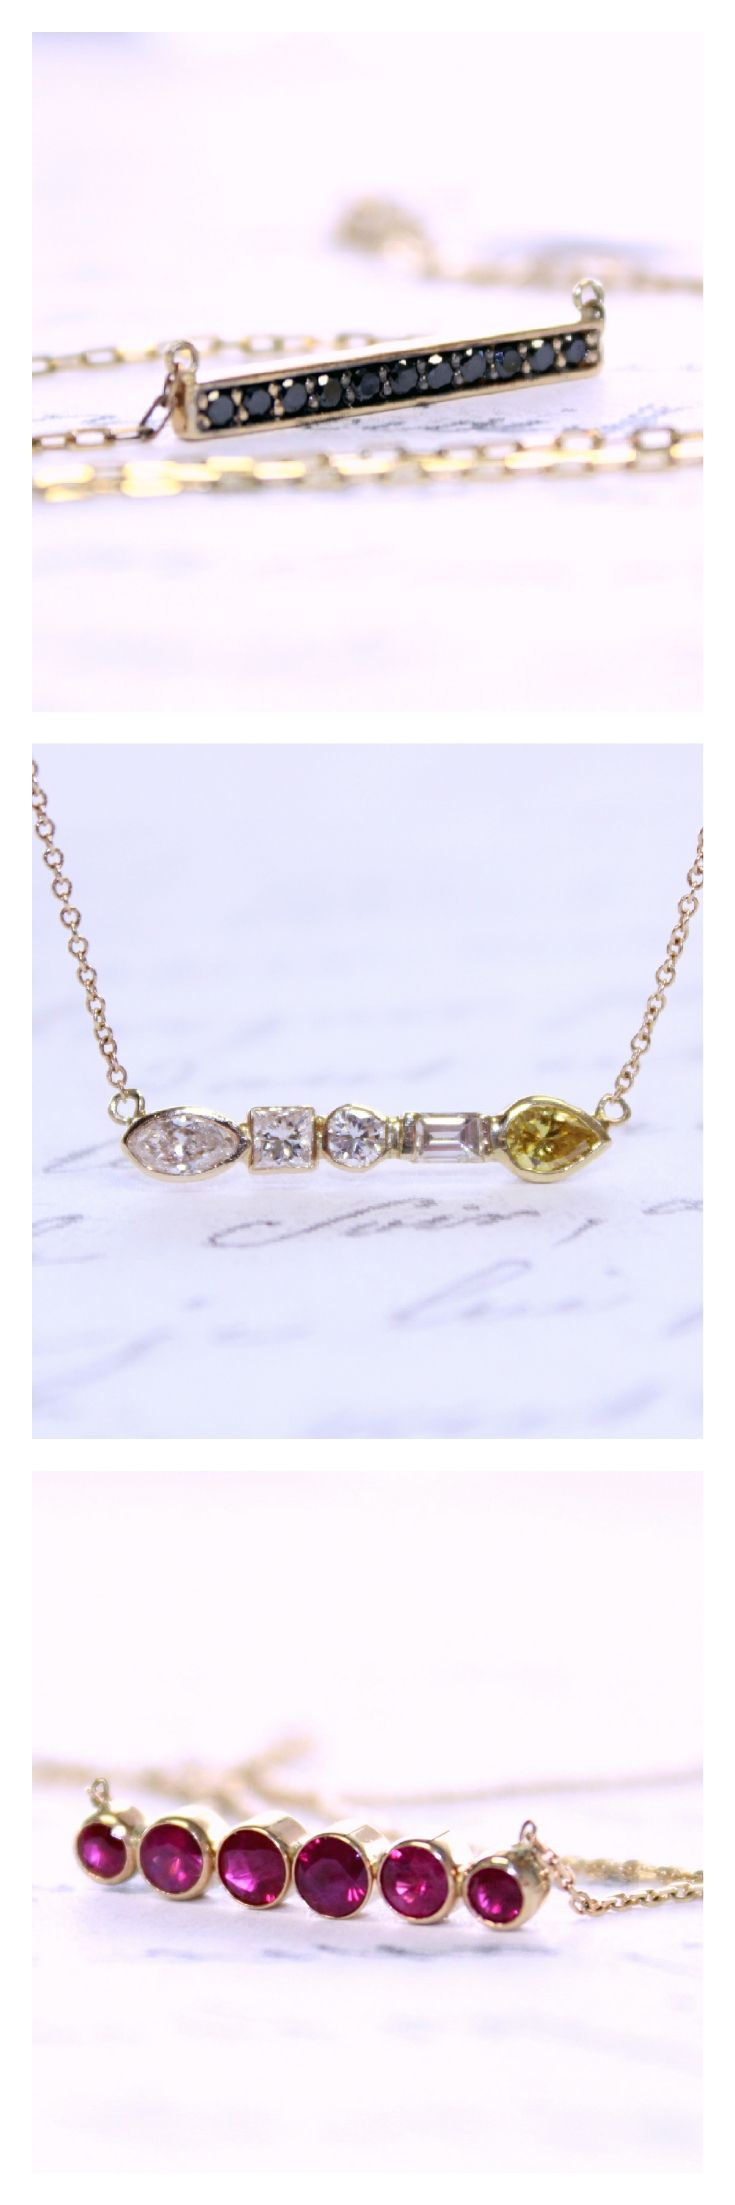 Bar necklaces - such a pretty modern look! Black Diamond and Yellow Gold Bar Necklace; White and Canary Diamond Bar Necklace; Ruby and Yellow Gold Bar Necklace